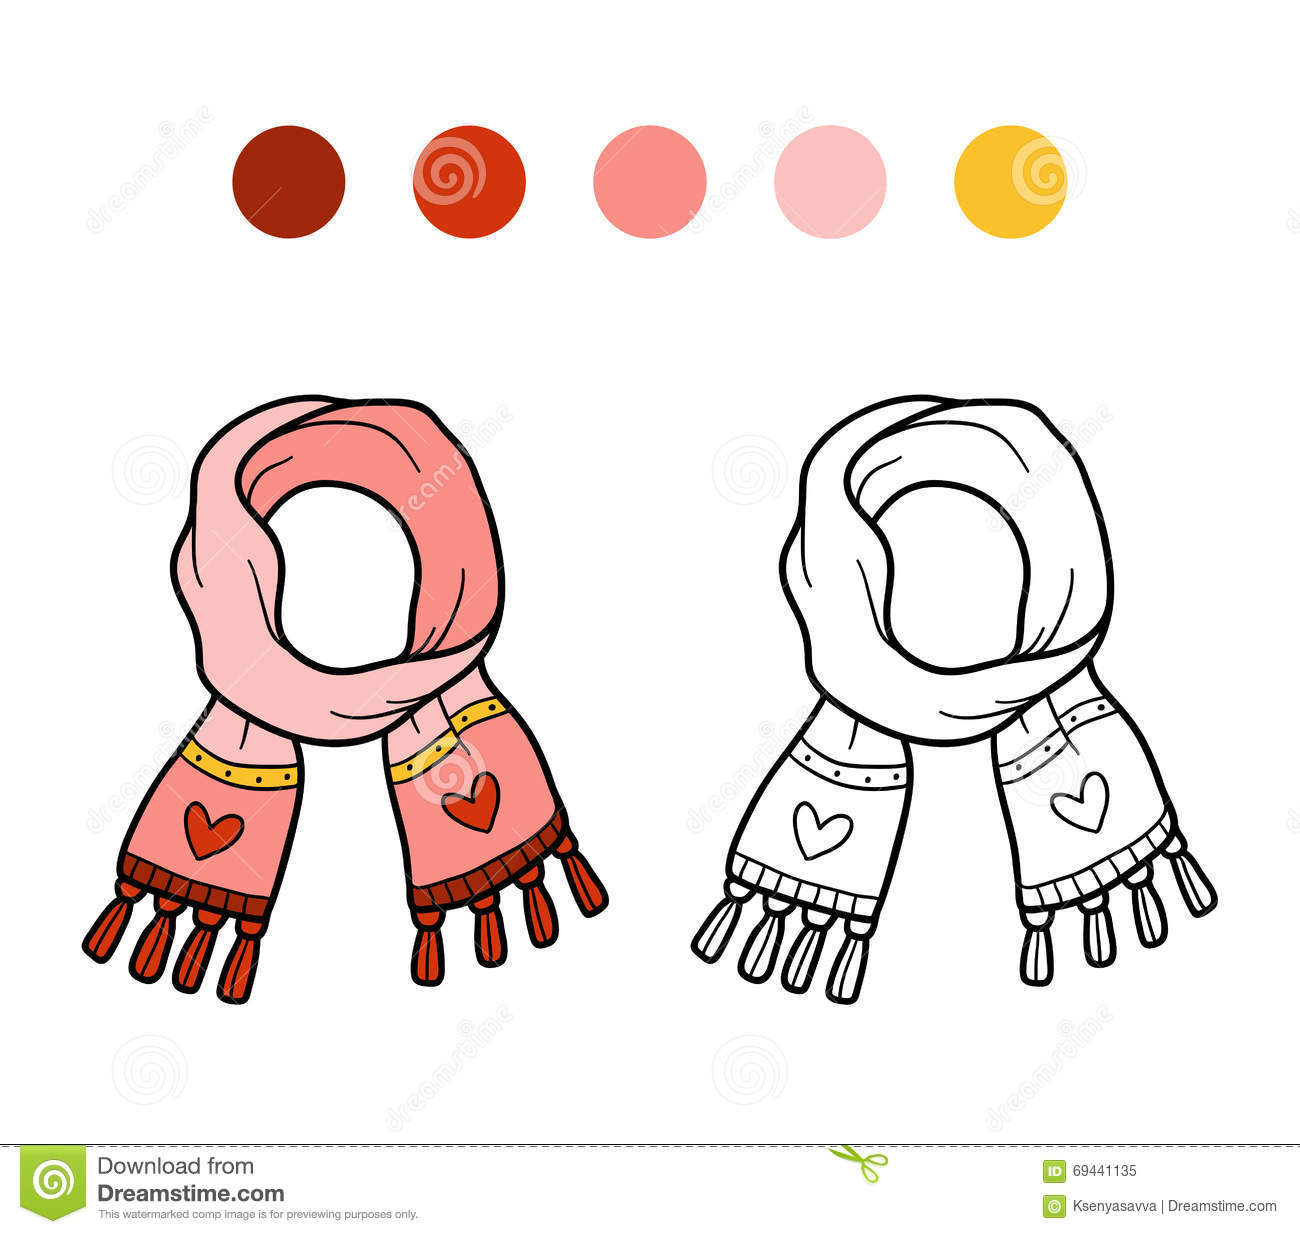 Coloring Book For Children Knitted Winter Scarf With Heart Stock Vector Illustration Of Muffler Adorable 69441135